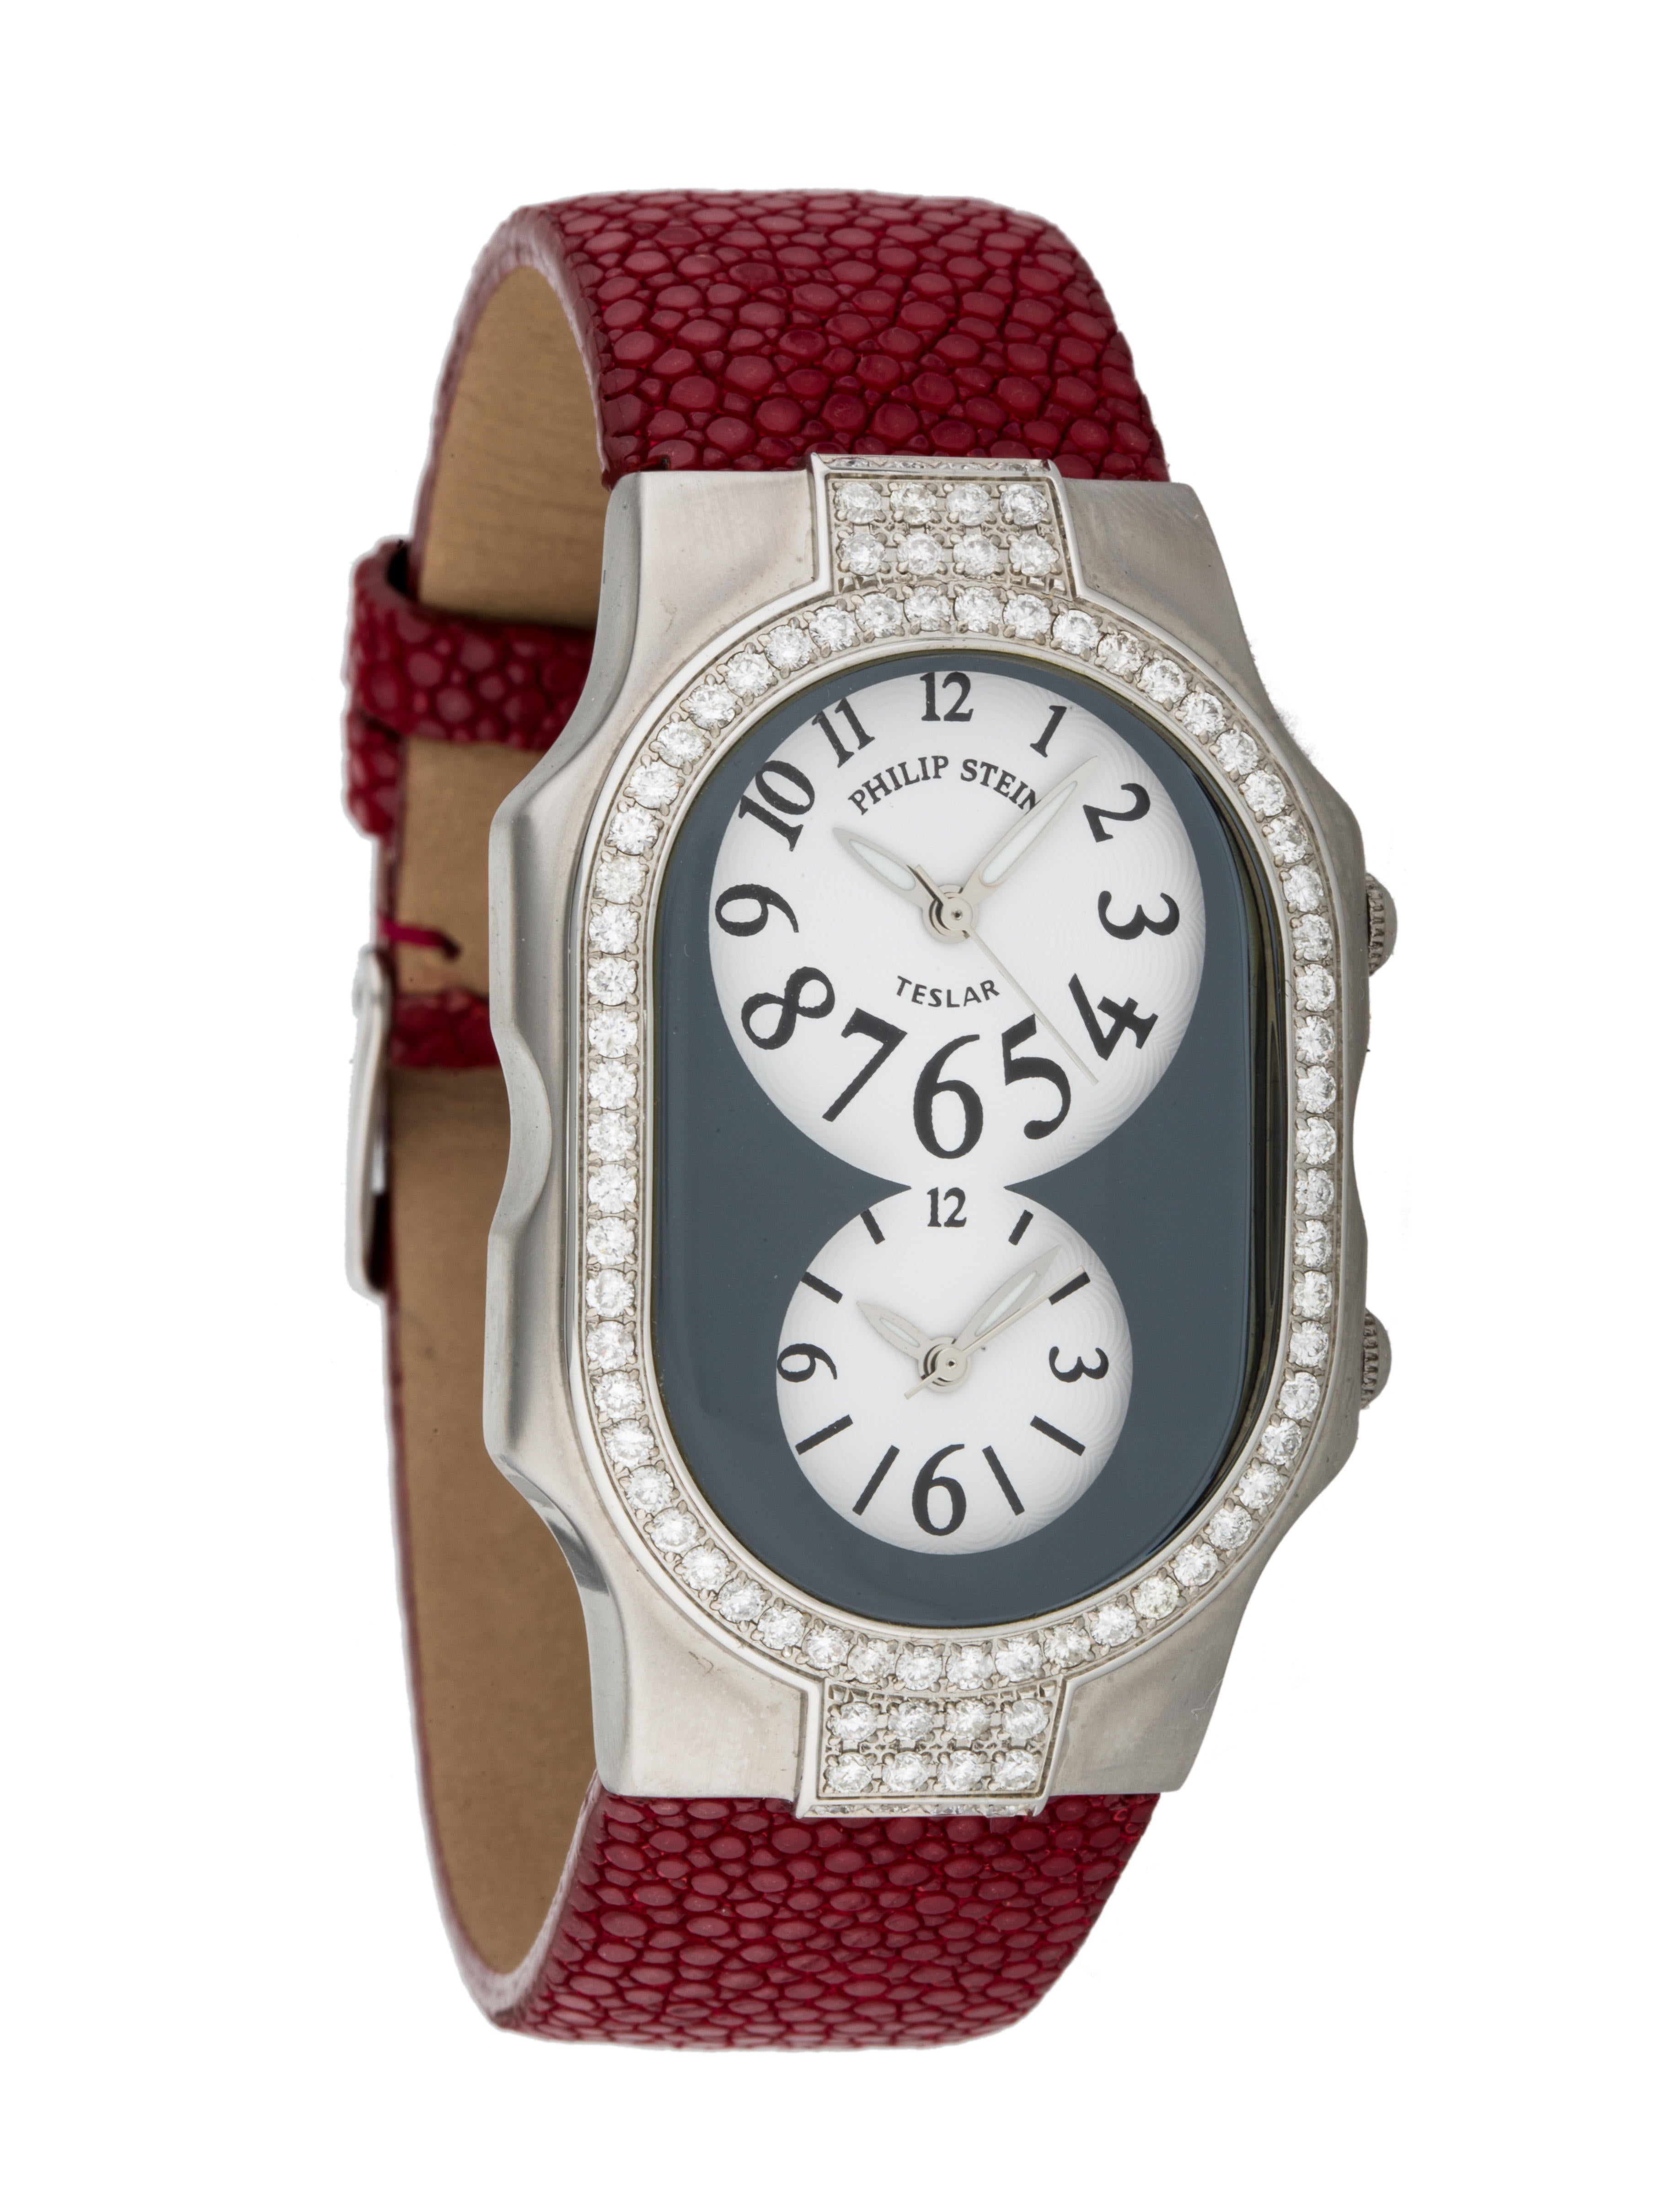 Philip stein diamond dual time zone watch strap phs20160 the realreal for Philip stein watches